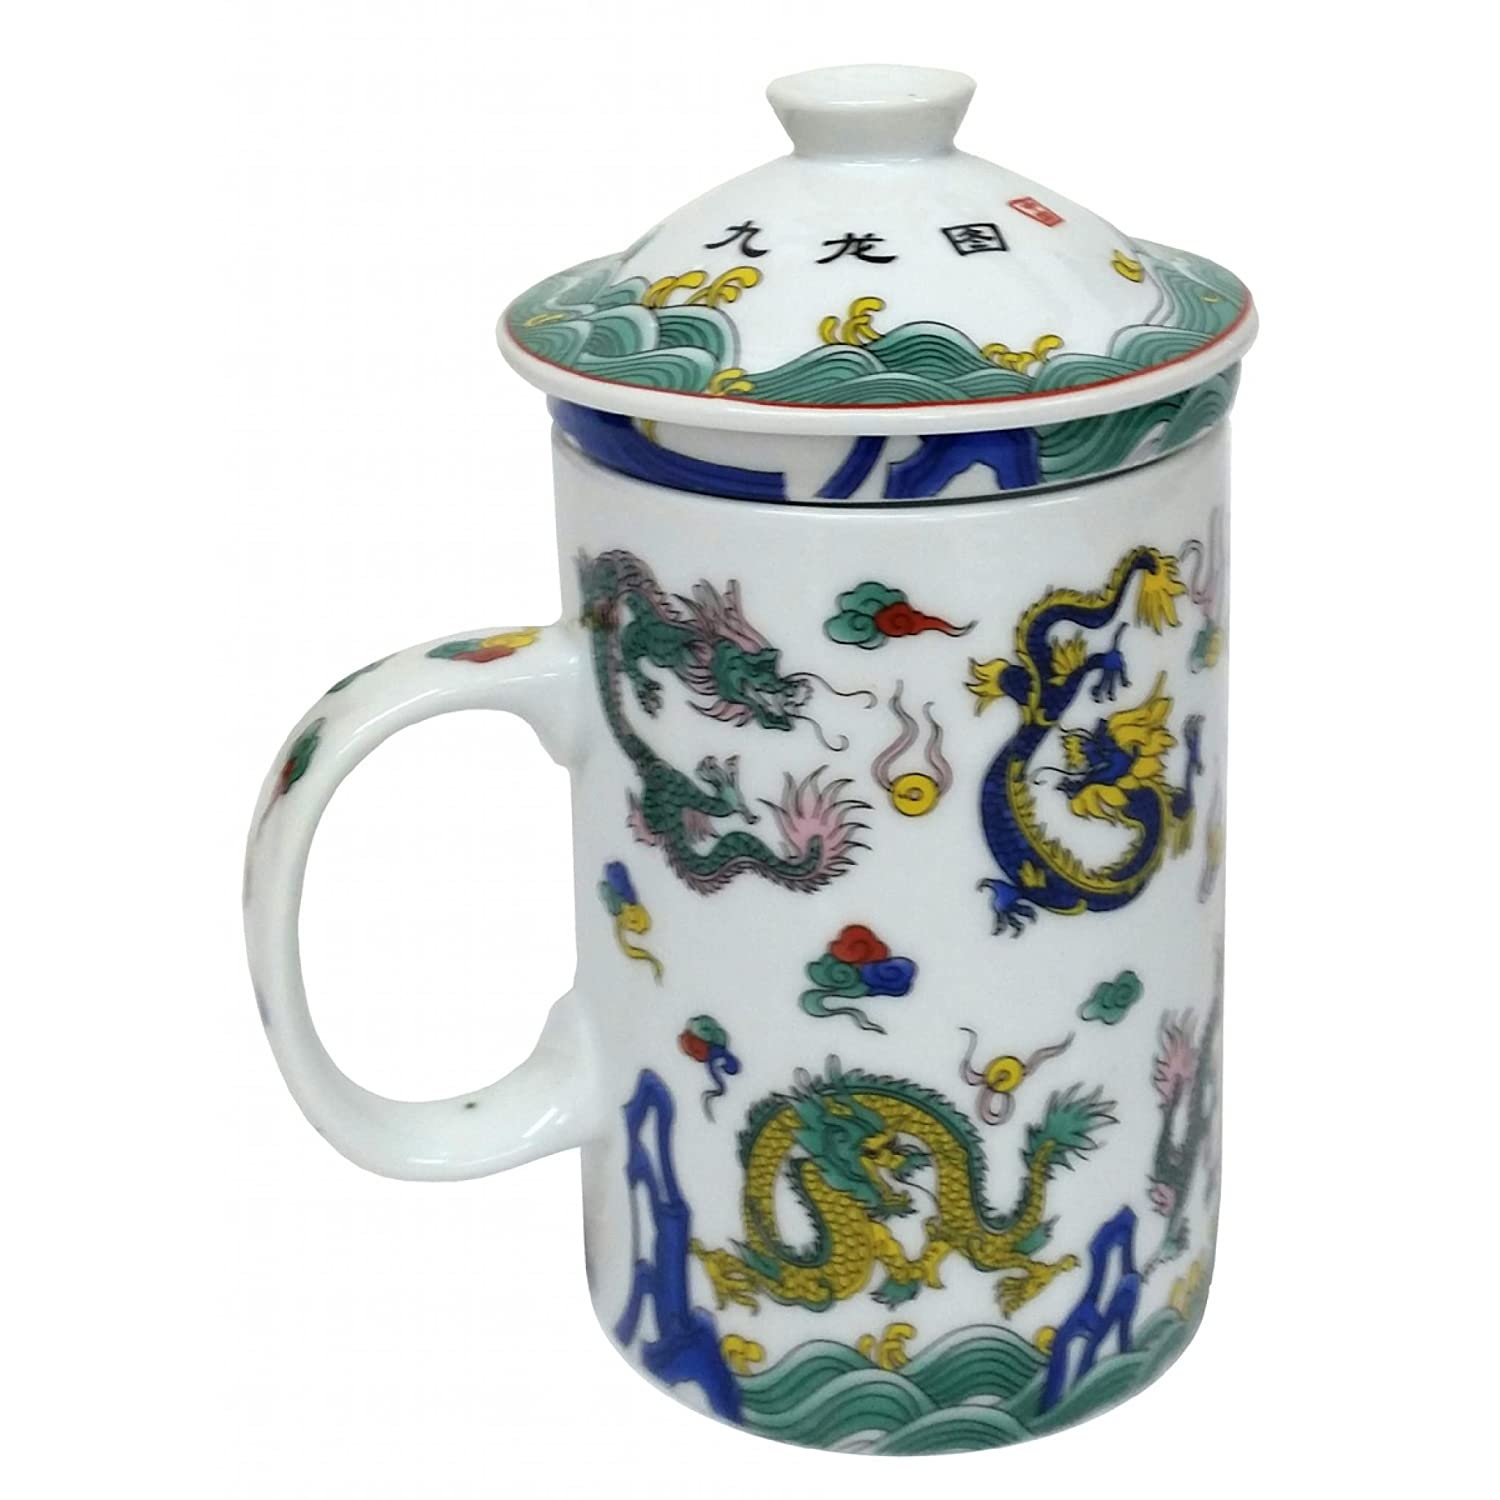 FSH264F Feng Shui Chinese Porcelain Mug Tea Cup with Lid: Eight Dragons Green